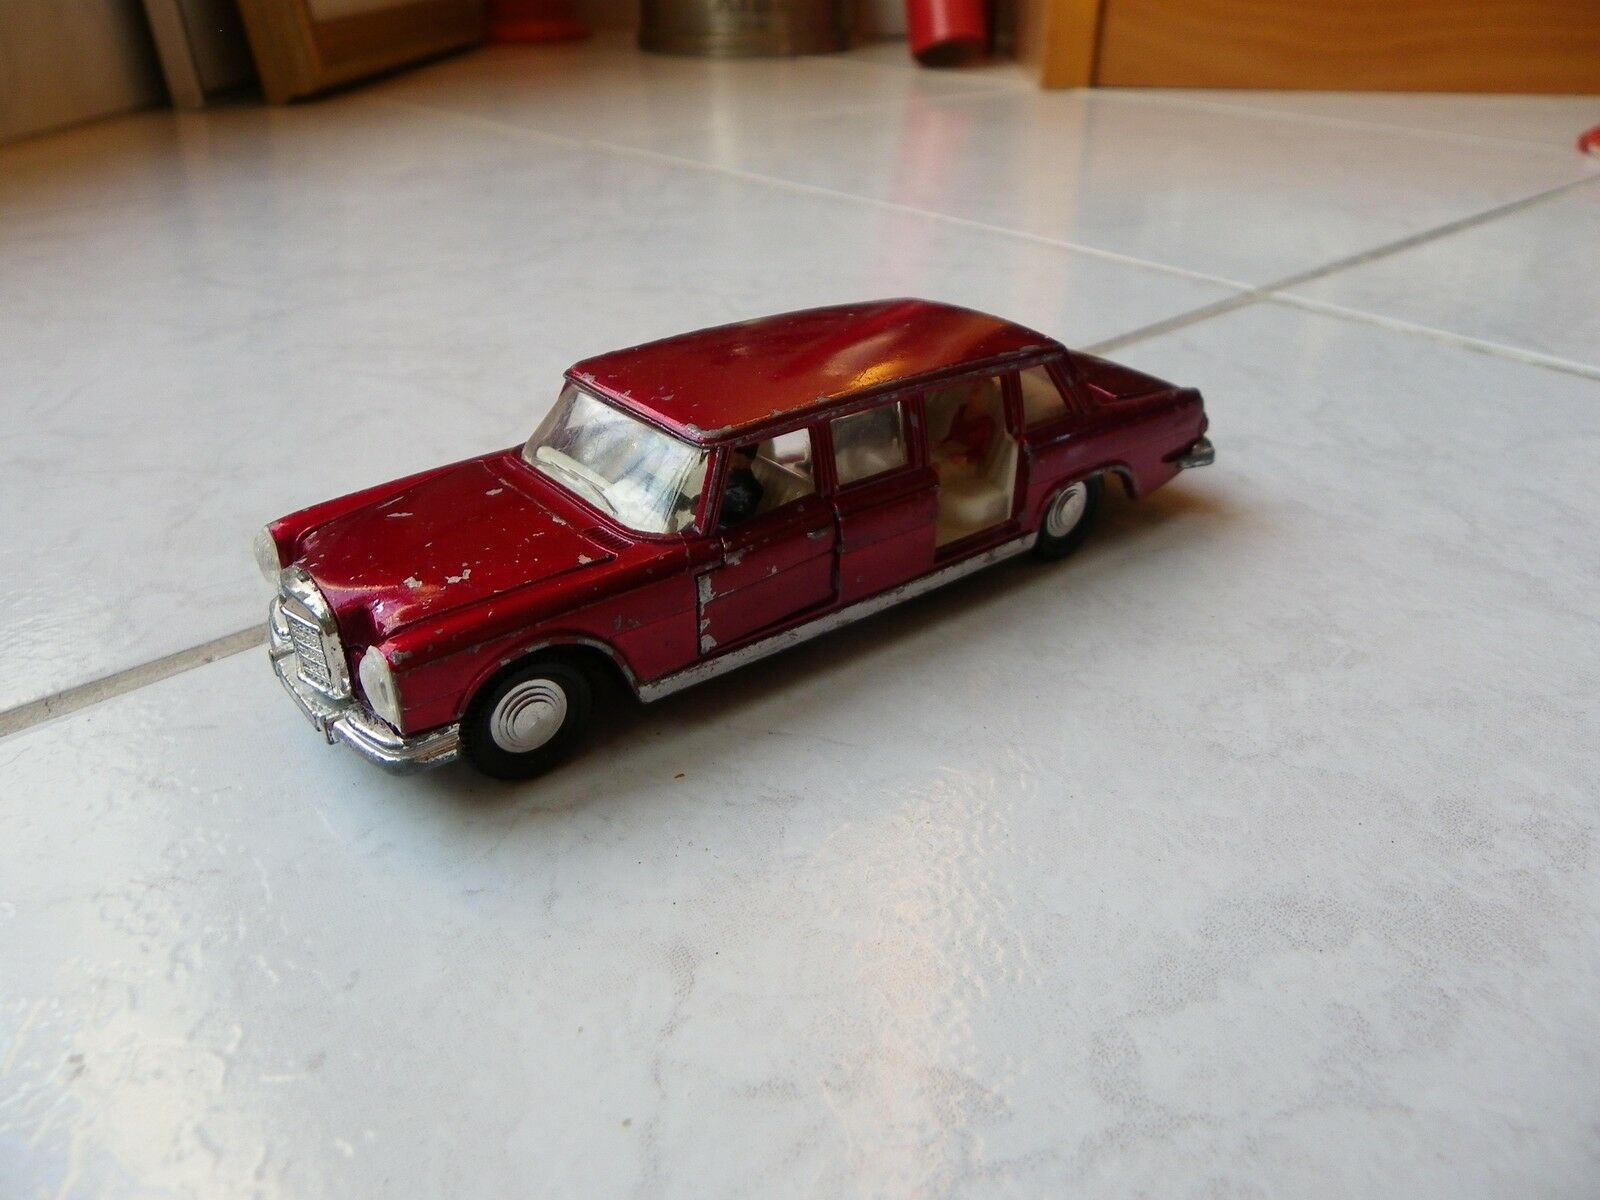 Mercedes 600 Ref 128 W100 Dinky Toys Meccano 1 43 toy miniature old